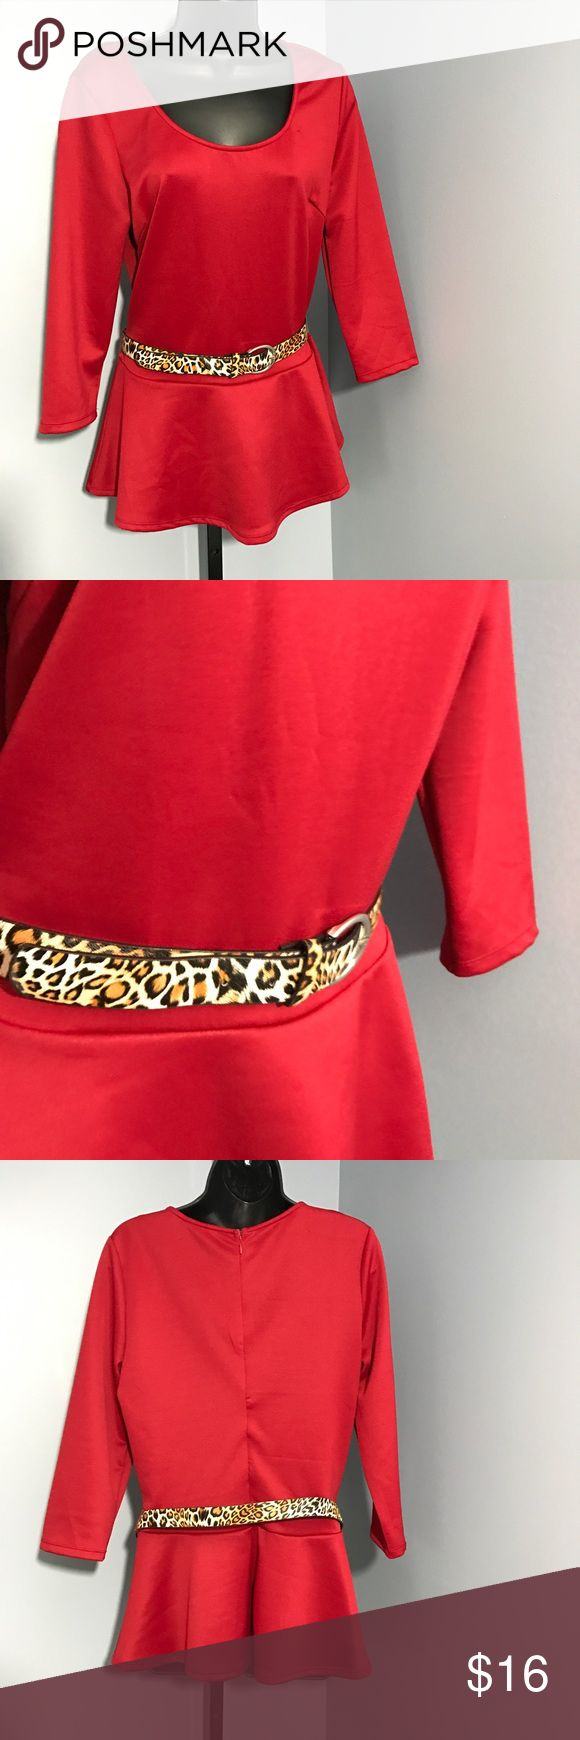 🌟JUST IN🌟Red peplum top with belt *Brand new *Red peplum top with detachable animal print belt *Hidden zipper on back *Size L *Perfect for Valentine's Day! Dots Tops